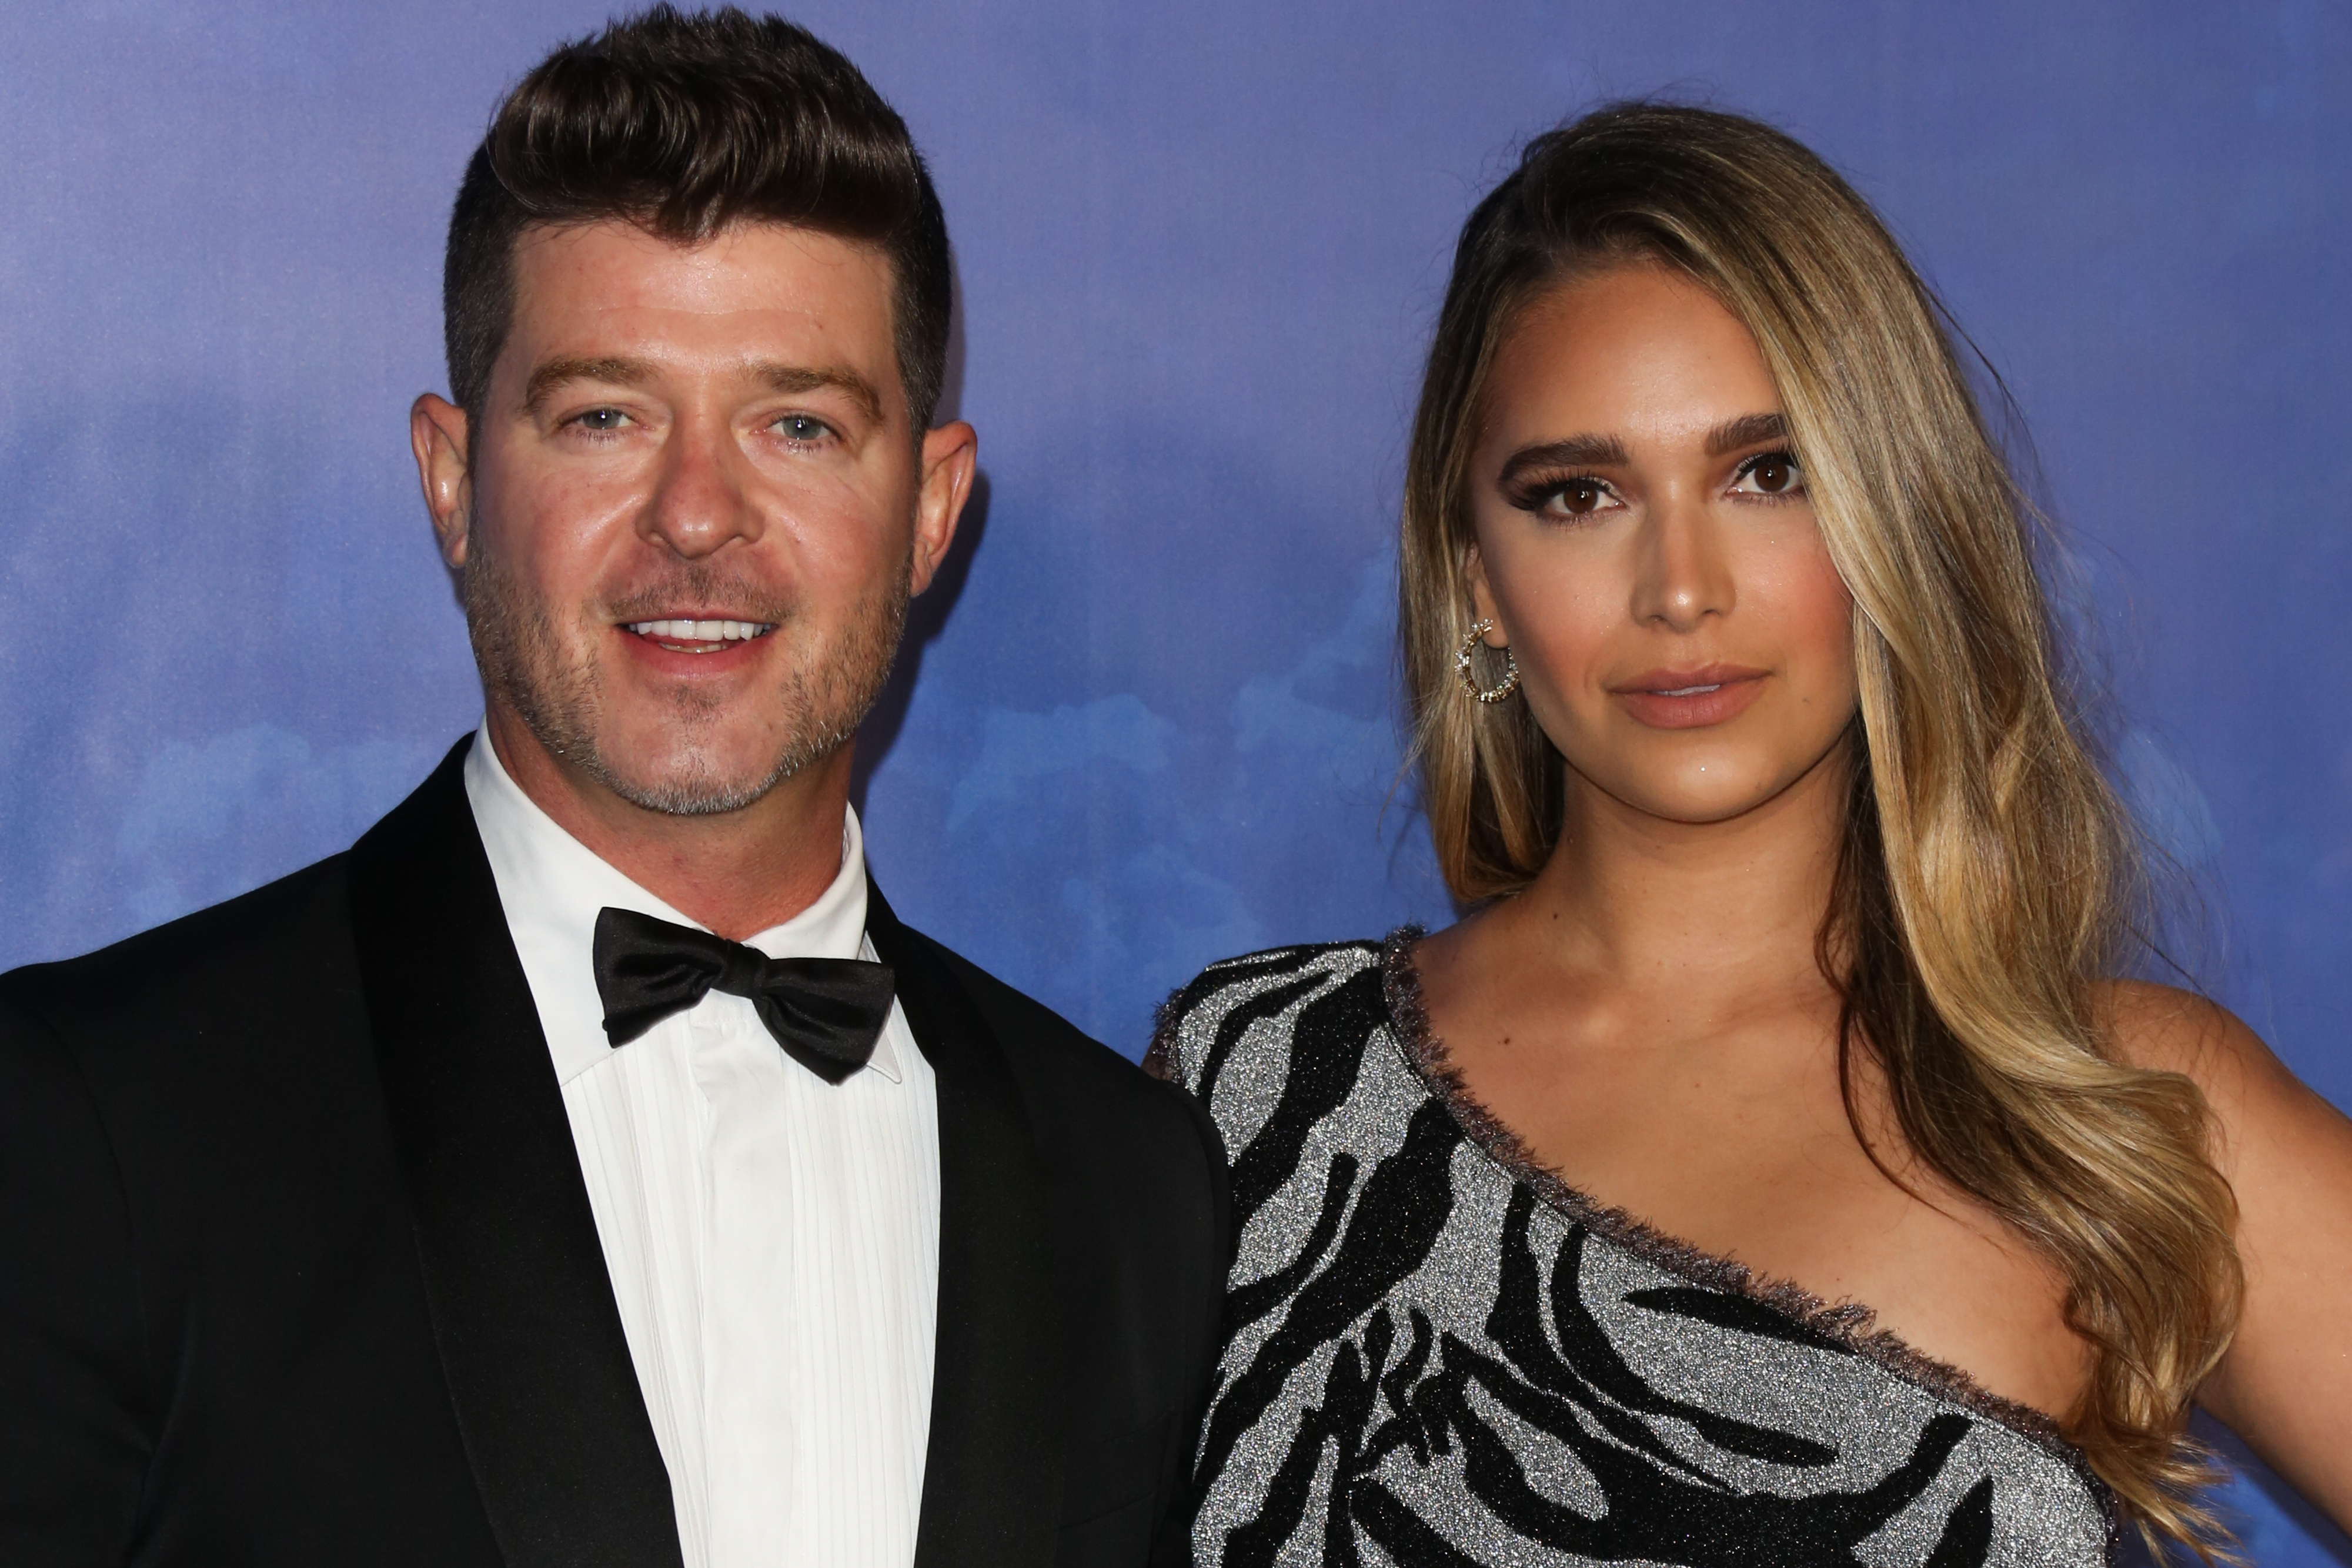 BEVERLY HILLS, CALIFORNIA - FEBRUARY 06: Robin Thicke (L) and April Love Geary (R) attend the 2020 Hollywood For The Global Ocean Gala honoring HSH Prince Albert II Of Monaco at Palazzo di Amore on February 06, 2020 in Beverly Hills, California. (Photo by Paul Archuleta/FilmMagic )